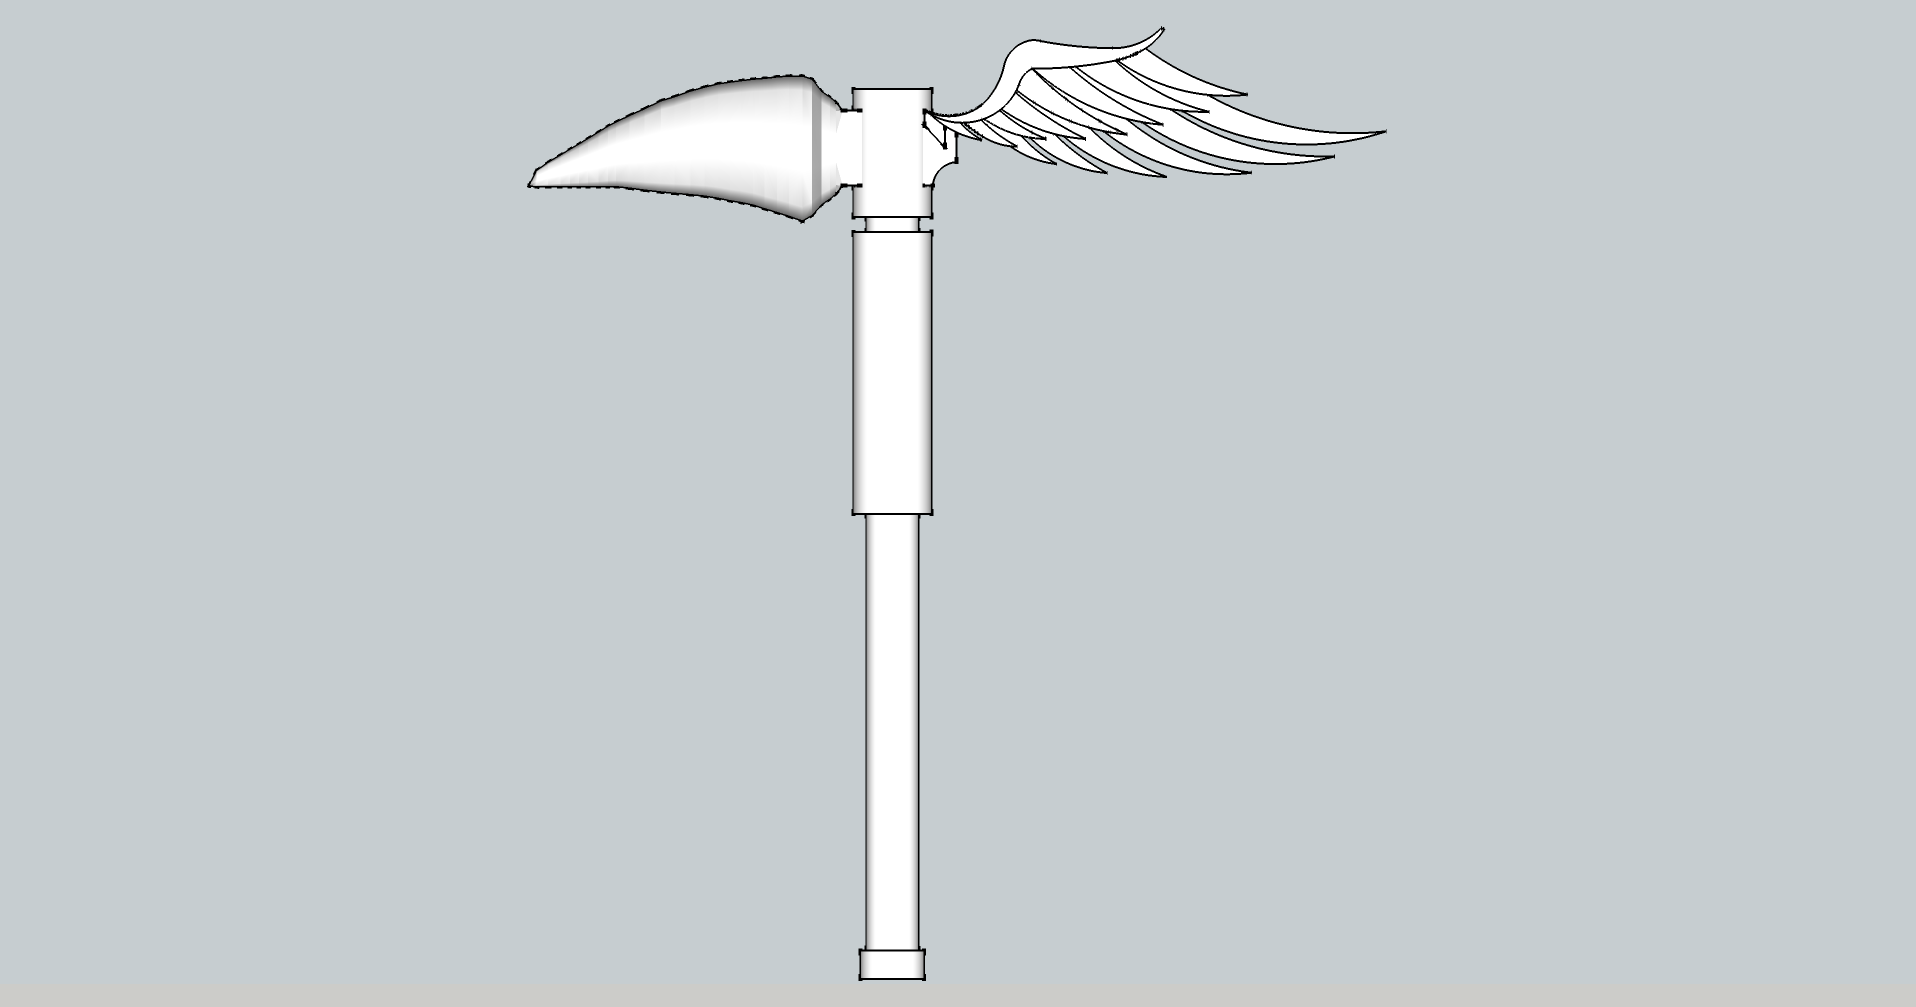 corvus_hammer_5_by_s3dition-d8efcg5.png